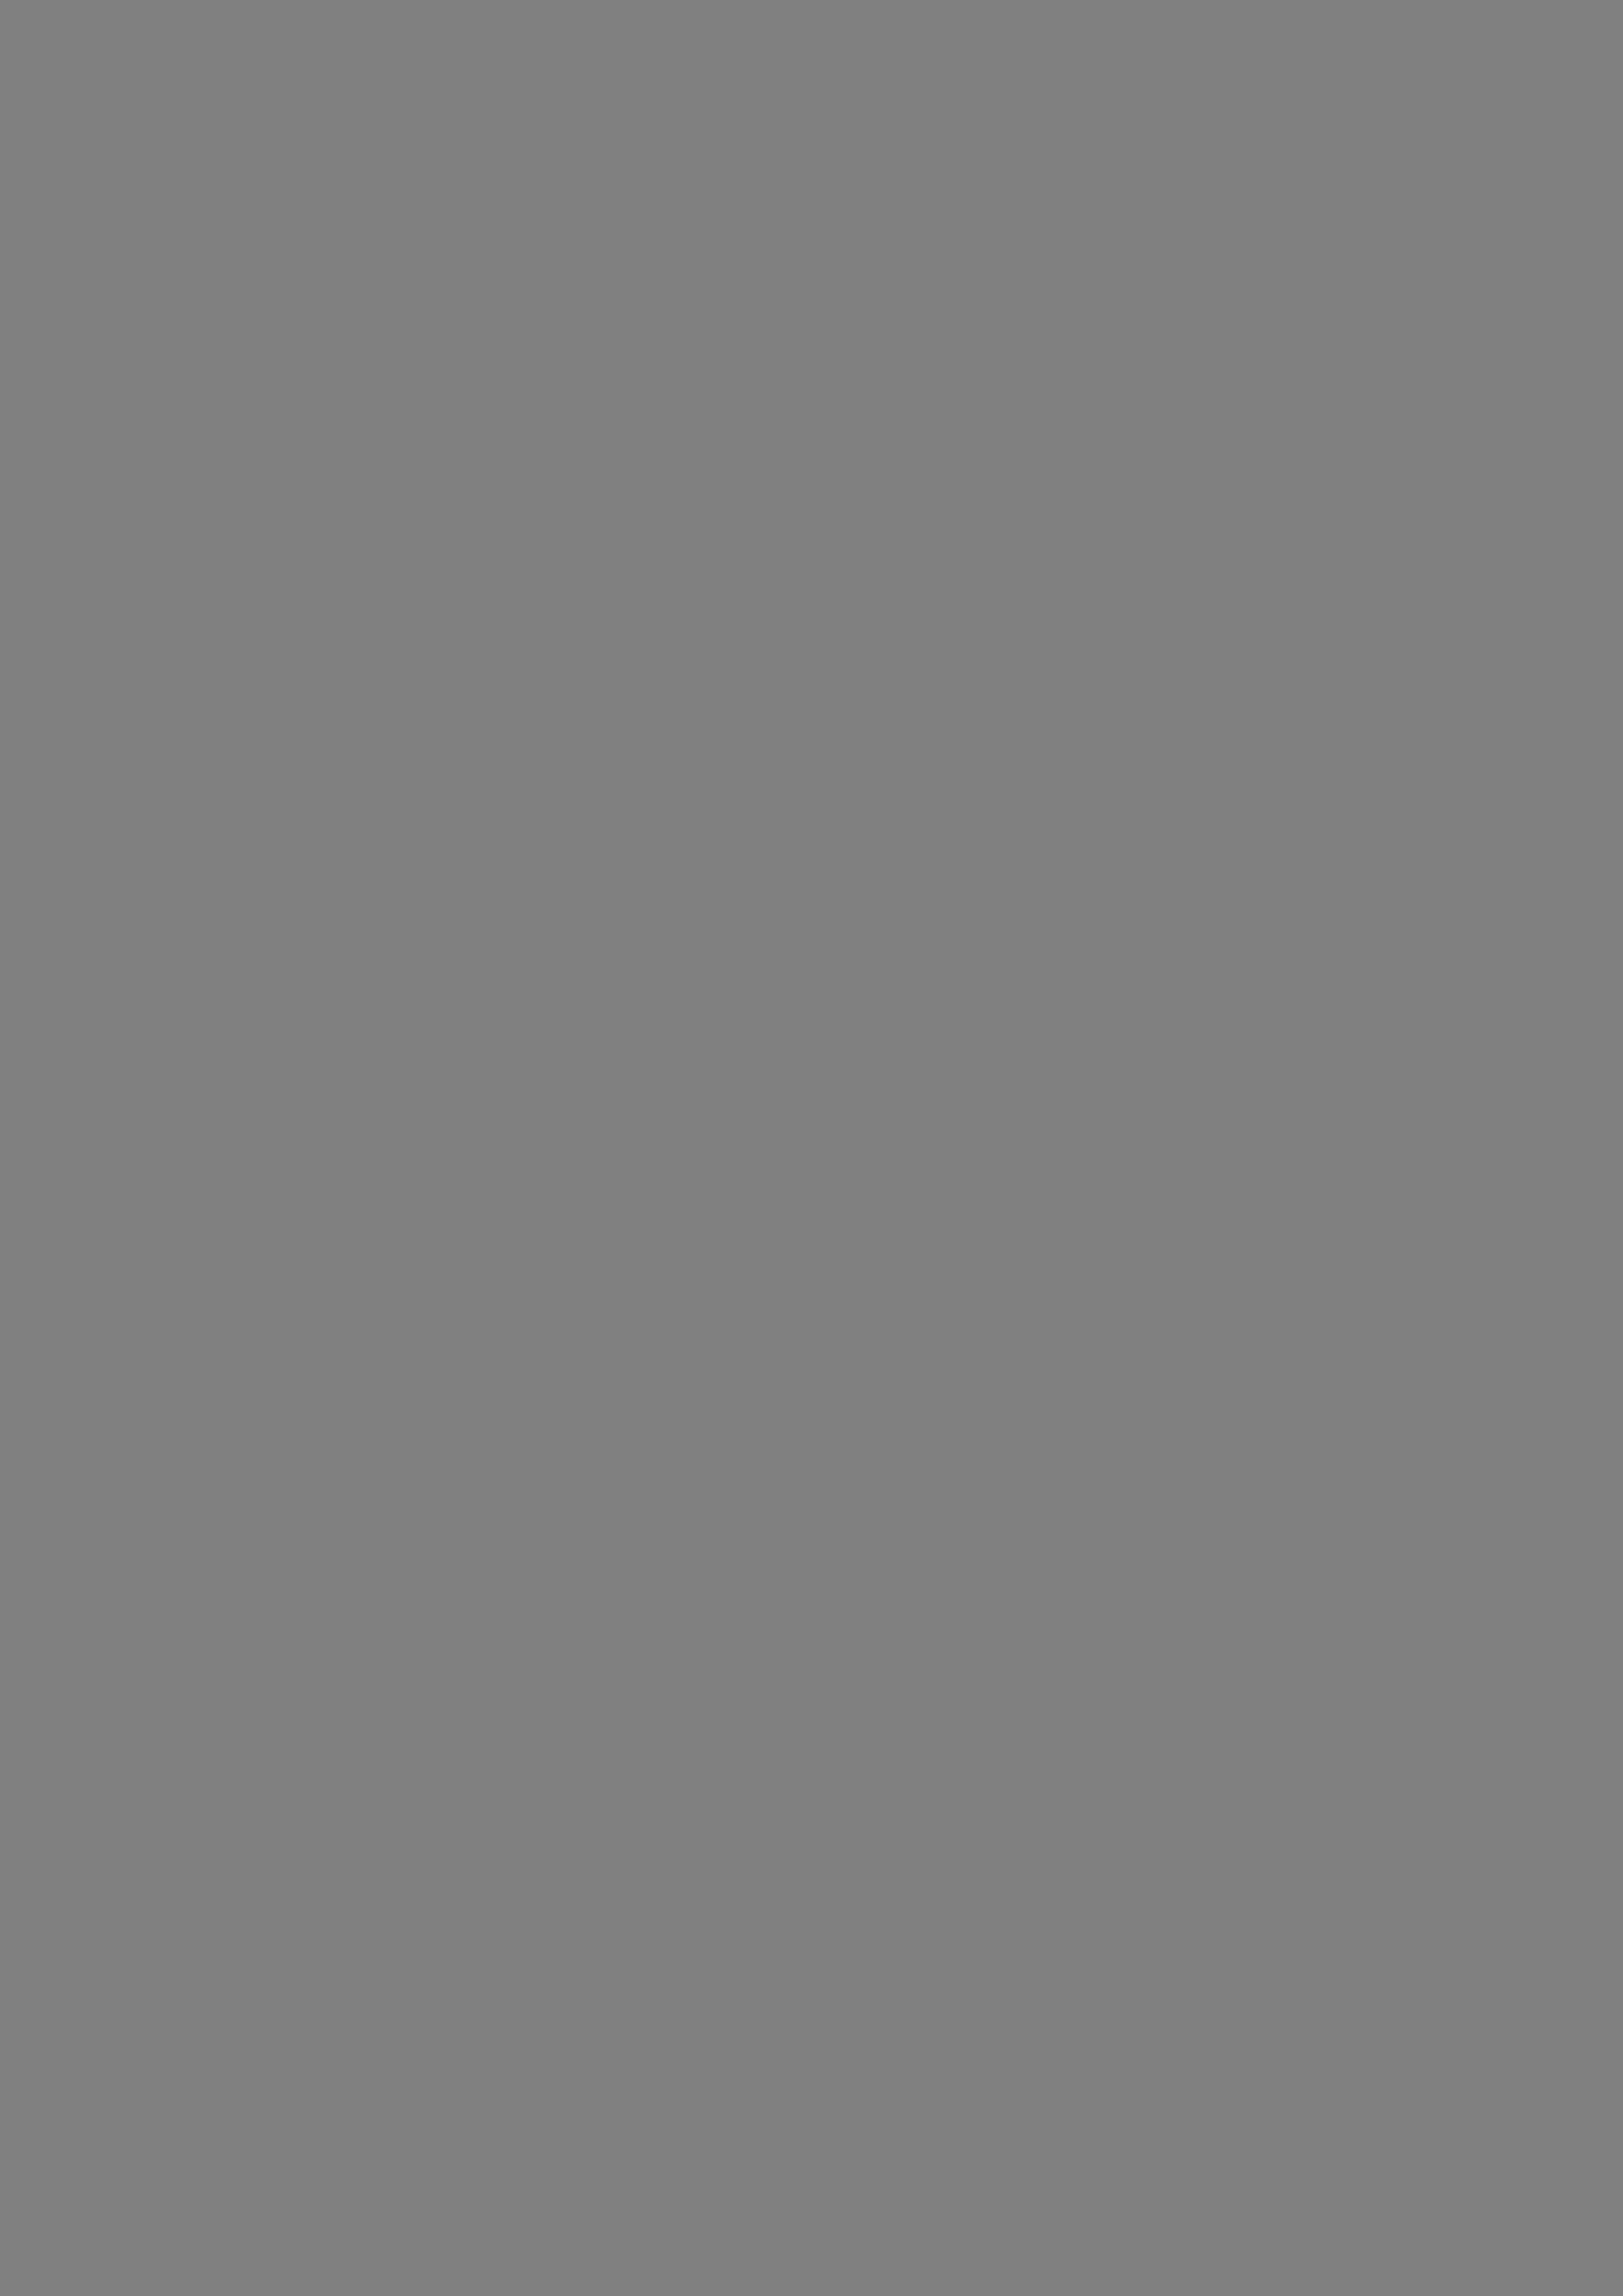 2480x3508 Trolley Grey Solid Color Background